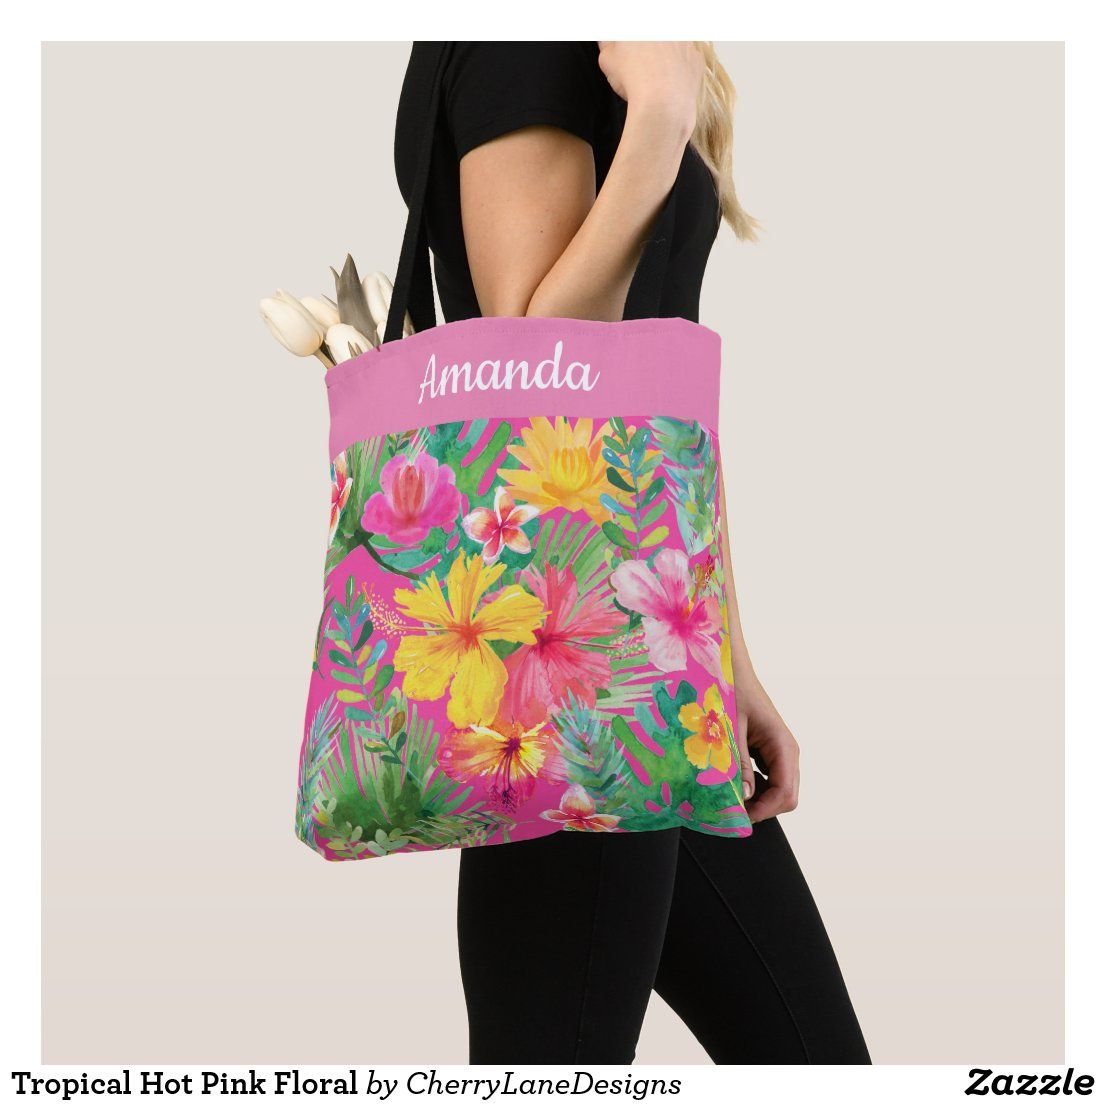 Tropical Hot Pink Floral Tote Bag Zazzle Co Uk In 2020 Hot Pink Floral Pink Floral Hot Pink